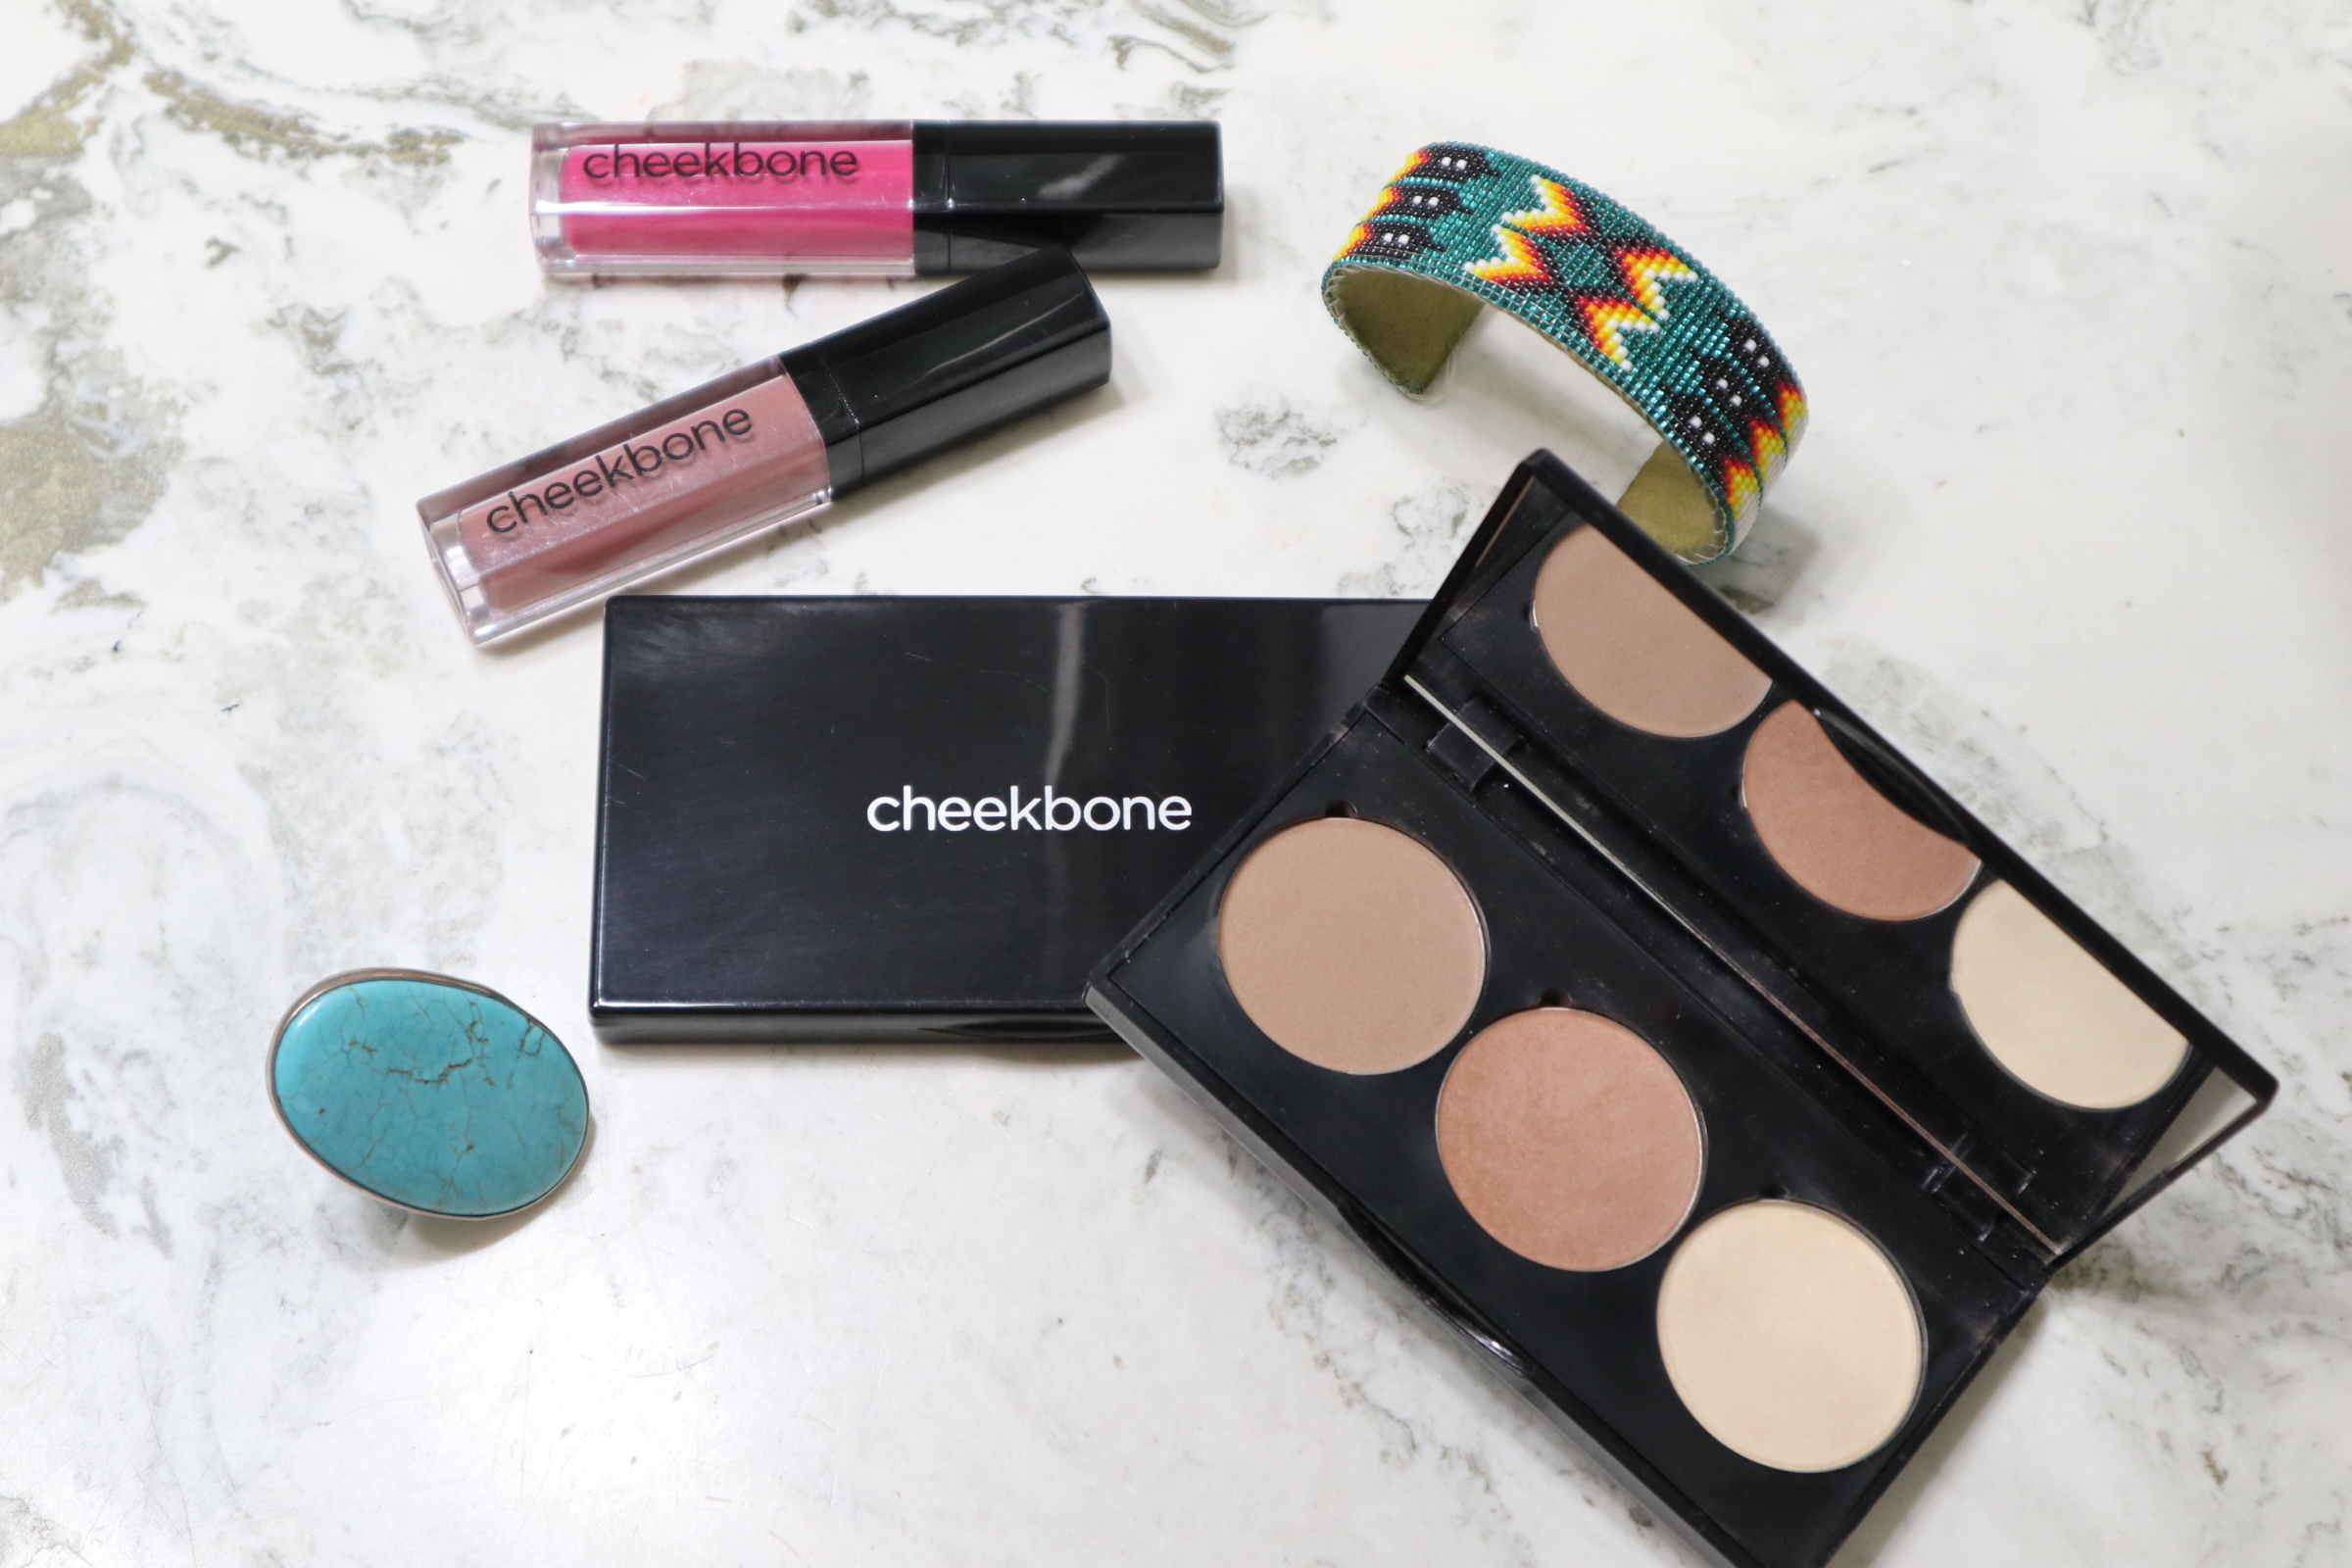 Amy Stretten, The Chief of Style, reviews Canadian Aboriginal-owned makeup brand, Cheekbone Beauty